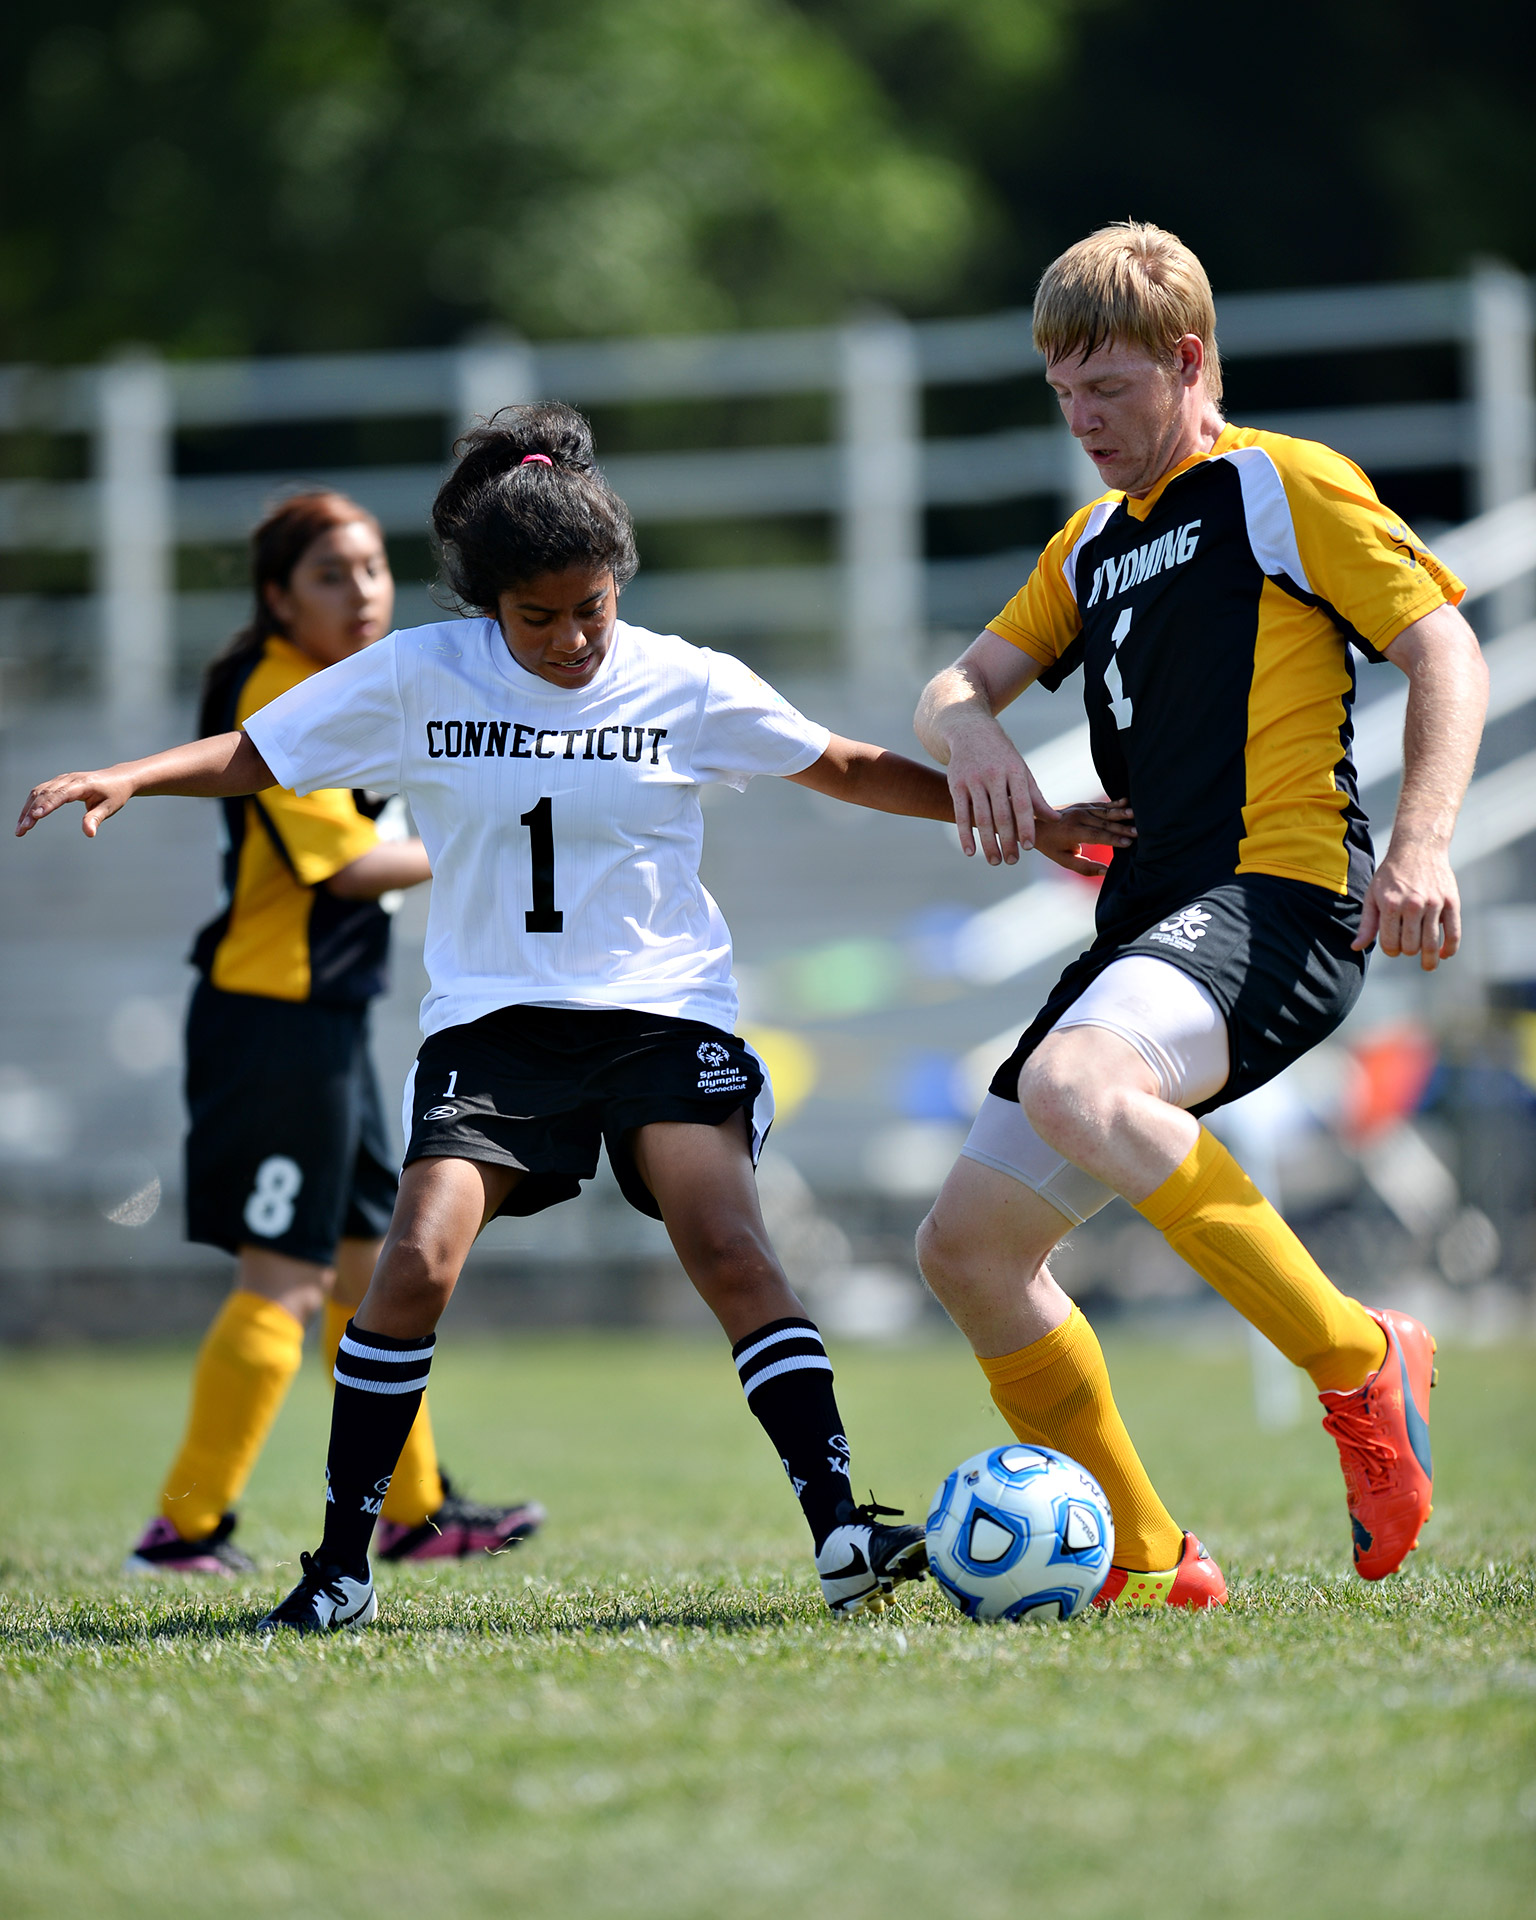 Unified Sports soccer teams (comprising athletes with and without intellectual disabilities) from Connecticut and Wyoming squared off in five-a-side soccer. The Connecticut team won bronze in its division.